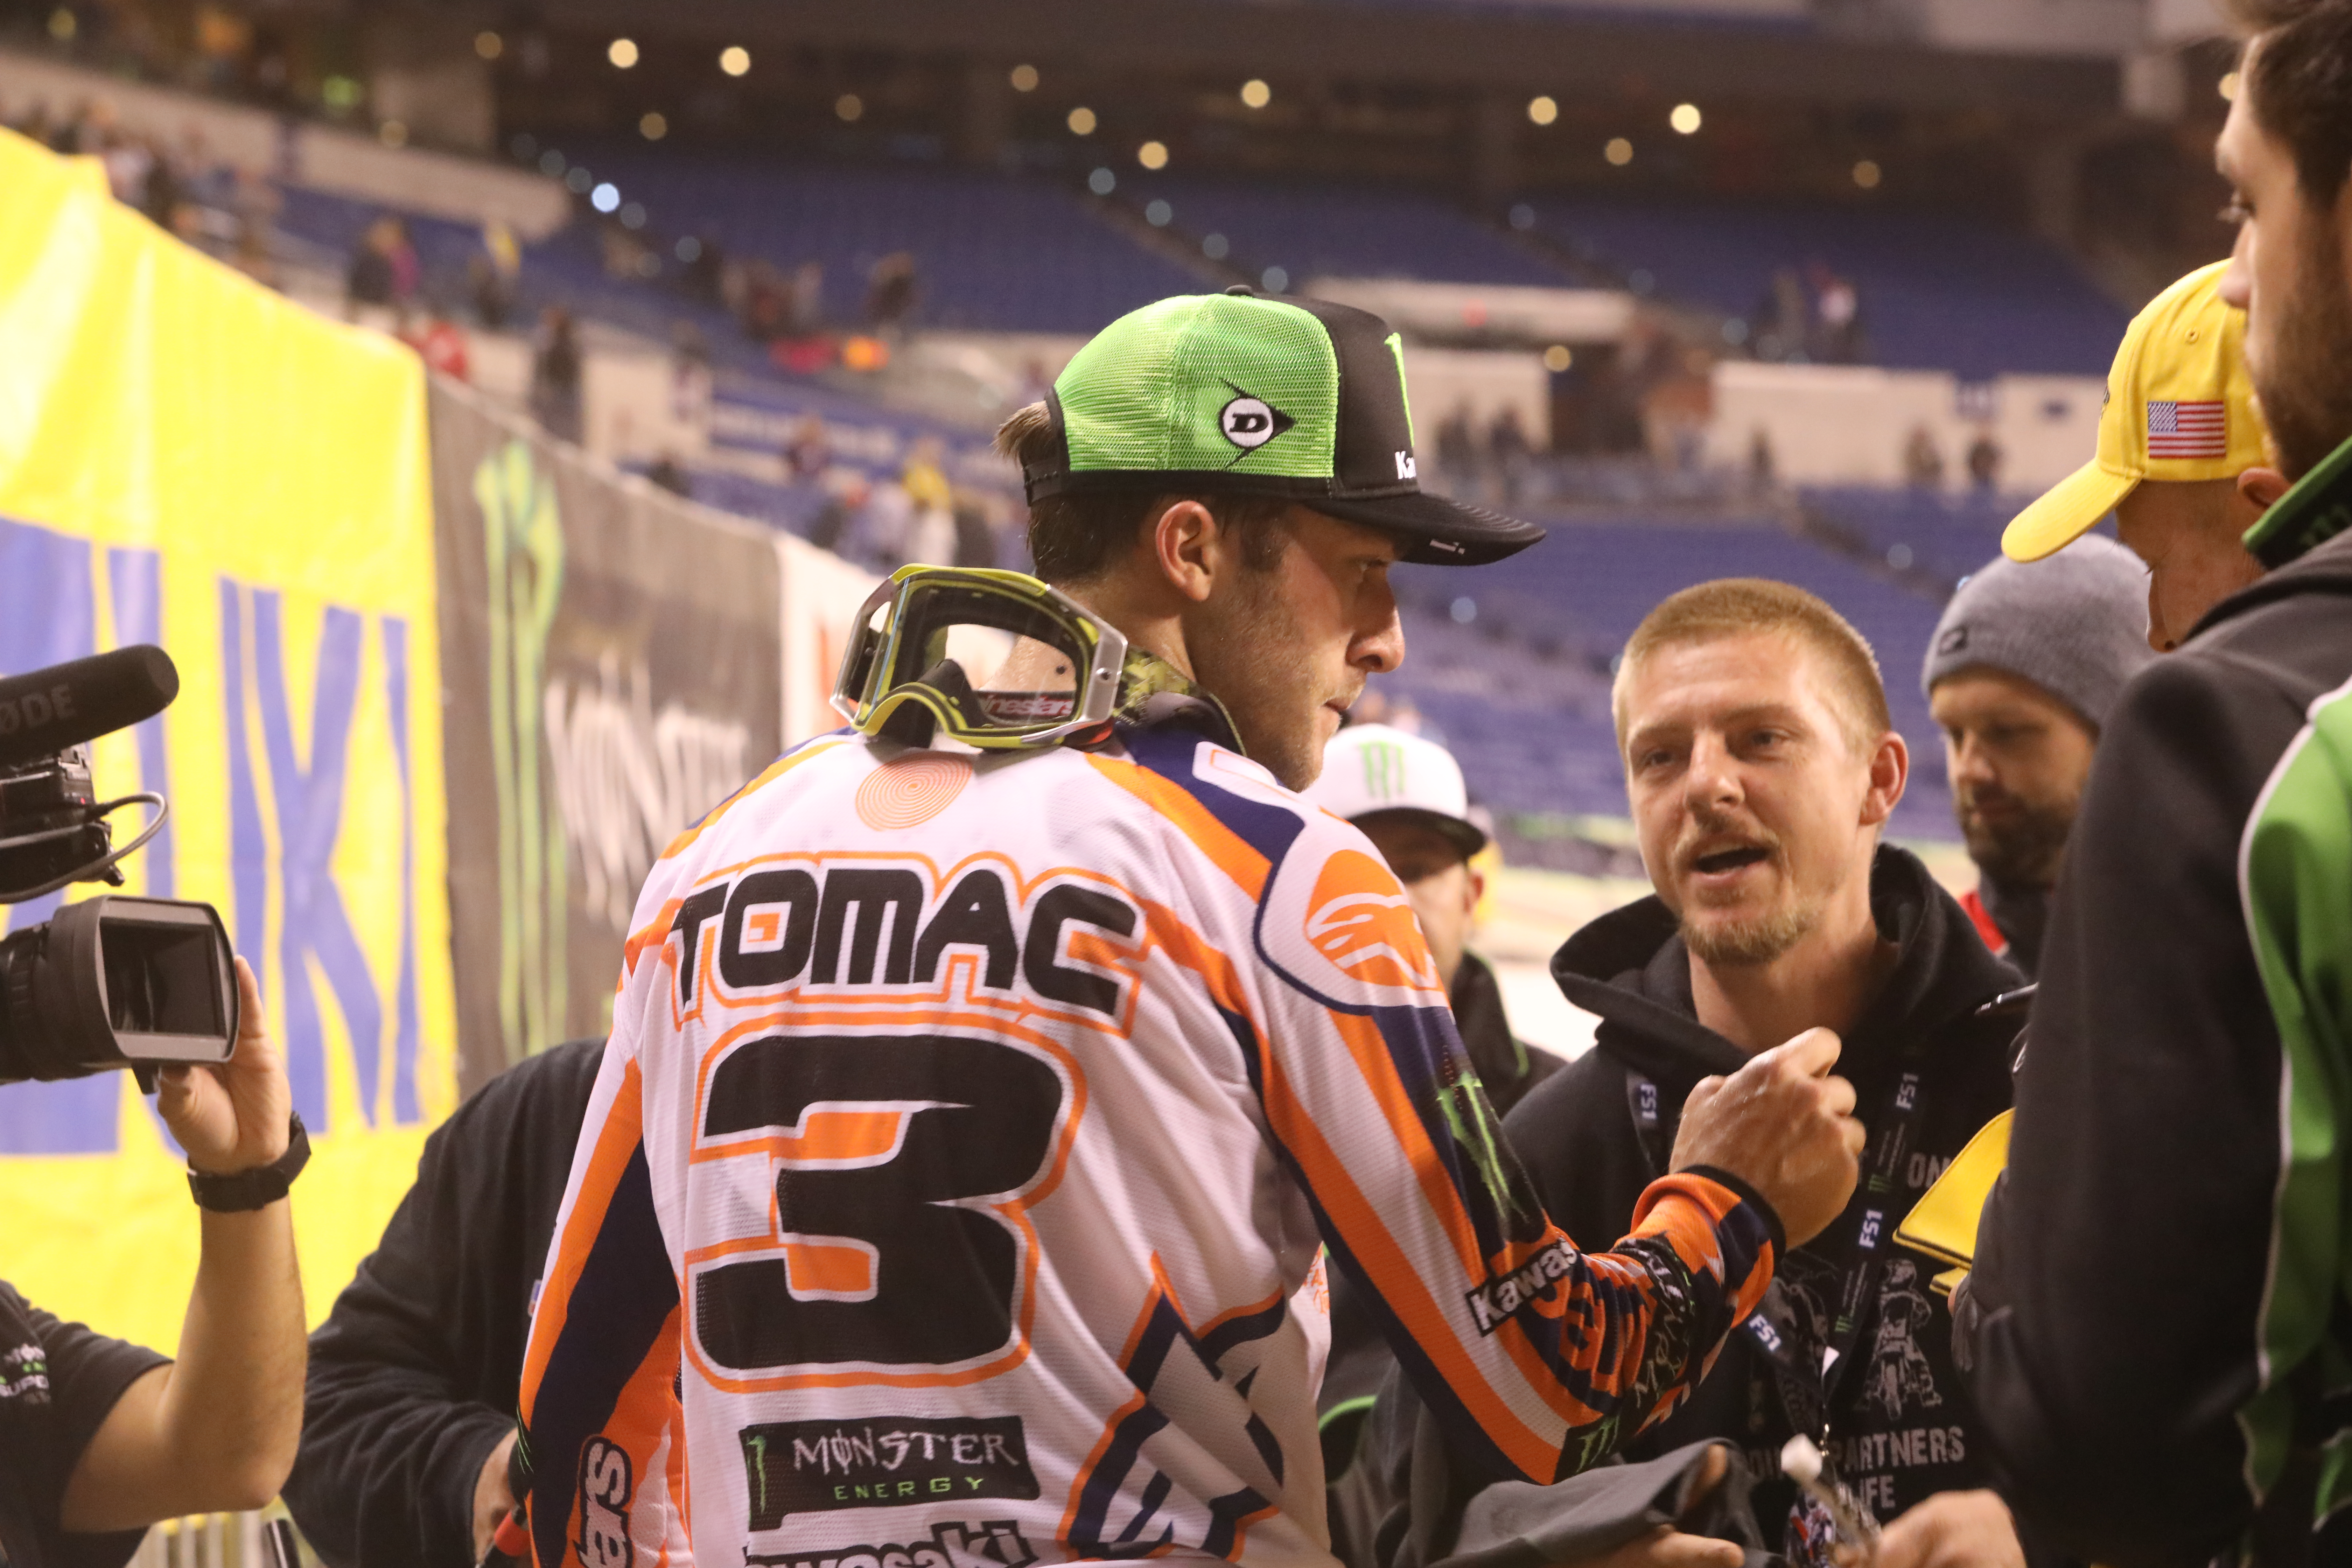 2017 Indianapolis Indiana Supercross Pictures